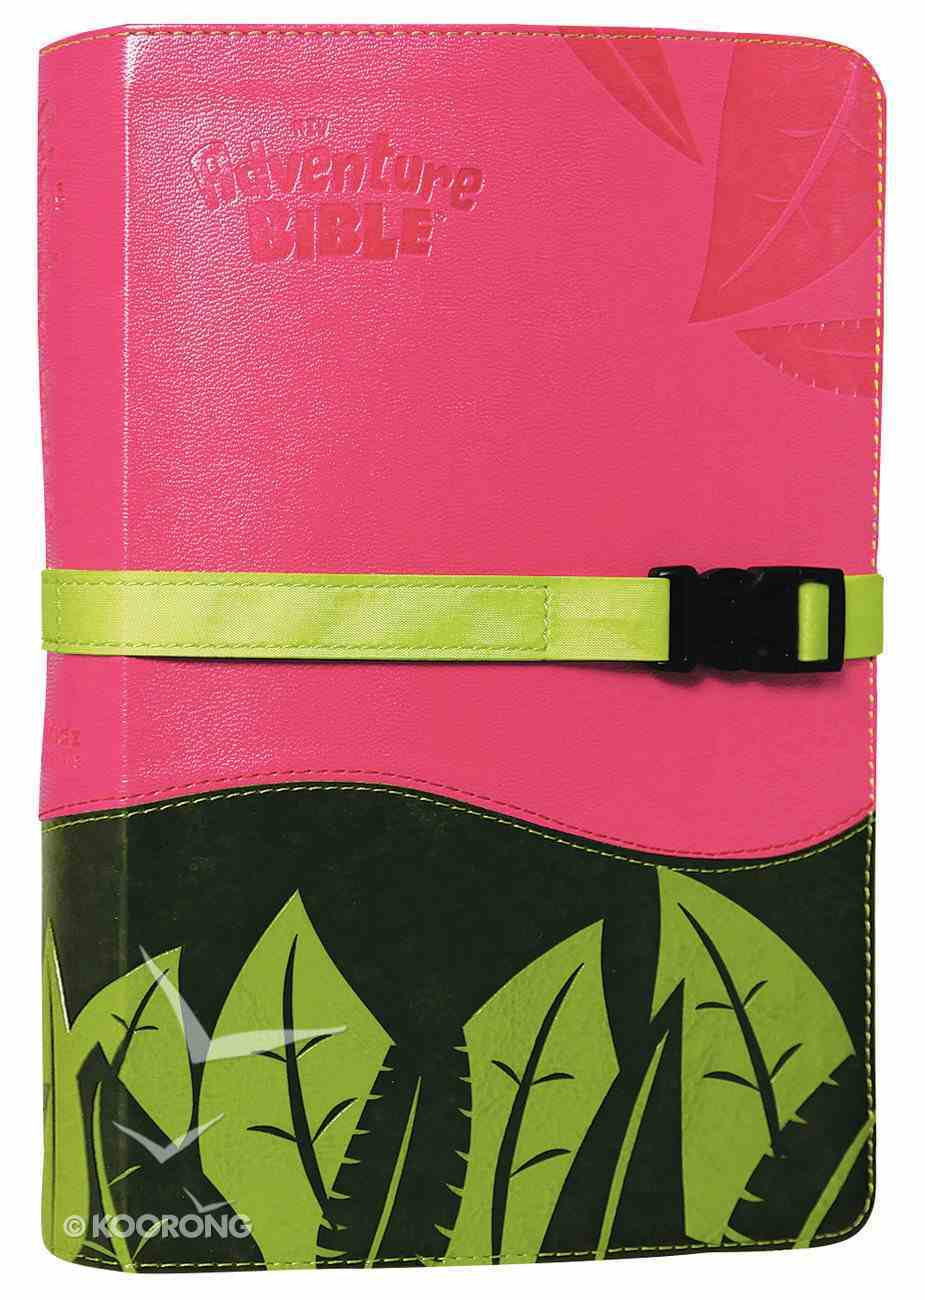 NIV Adventure Bible Pink/Green Clip Closure (Black Letter Edition) Premium Imitation Leather